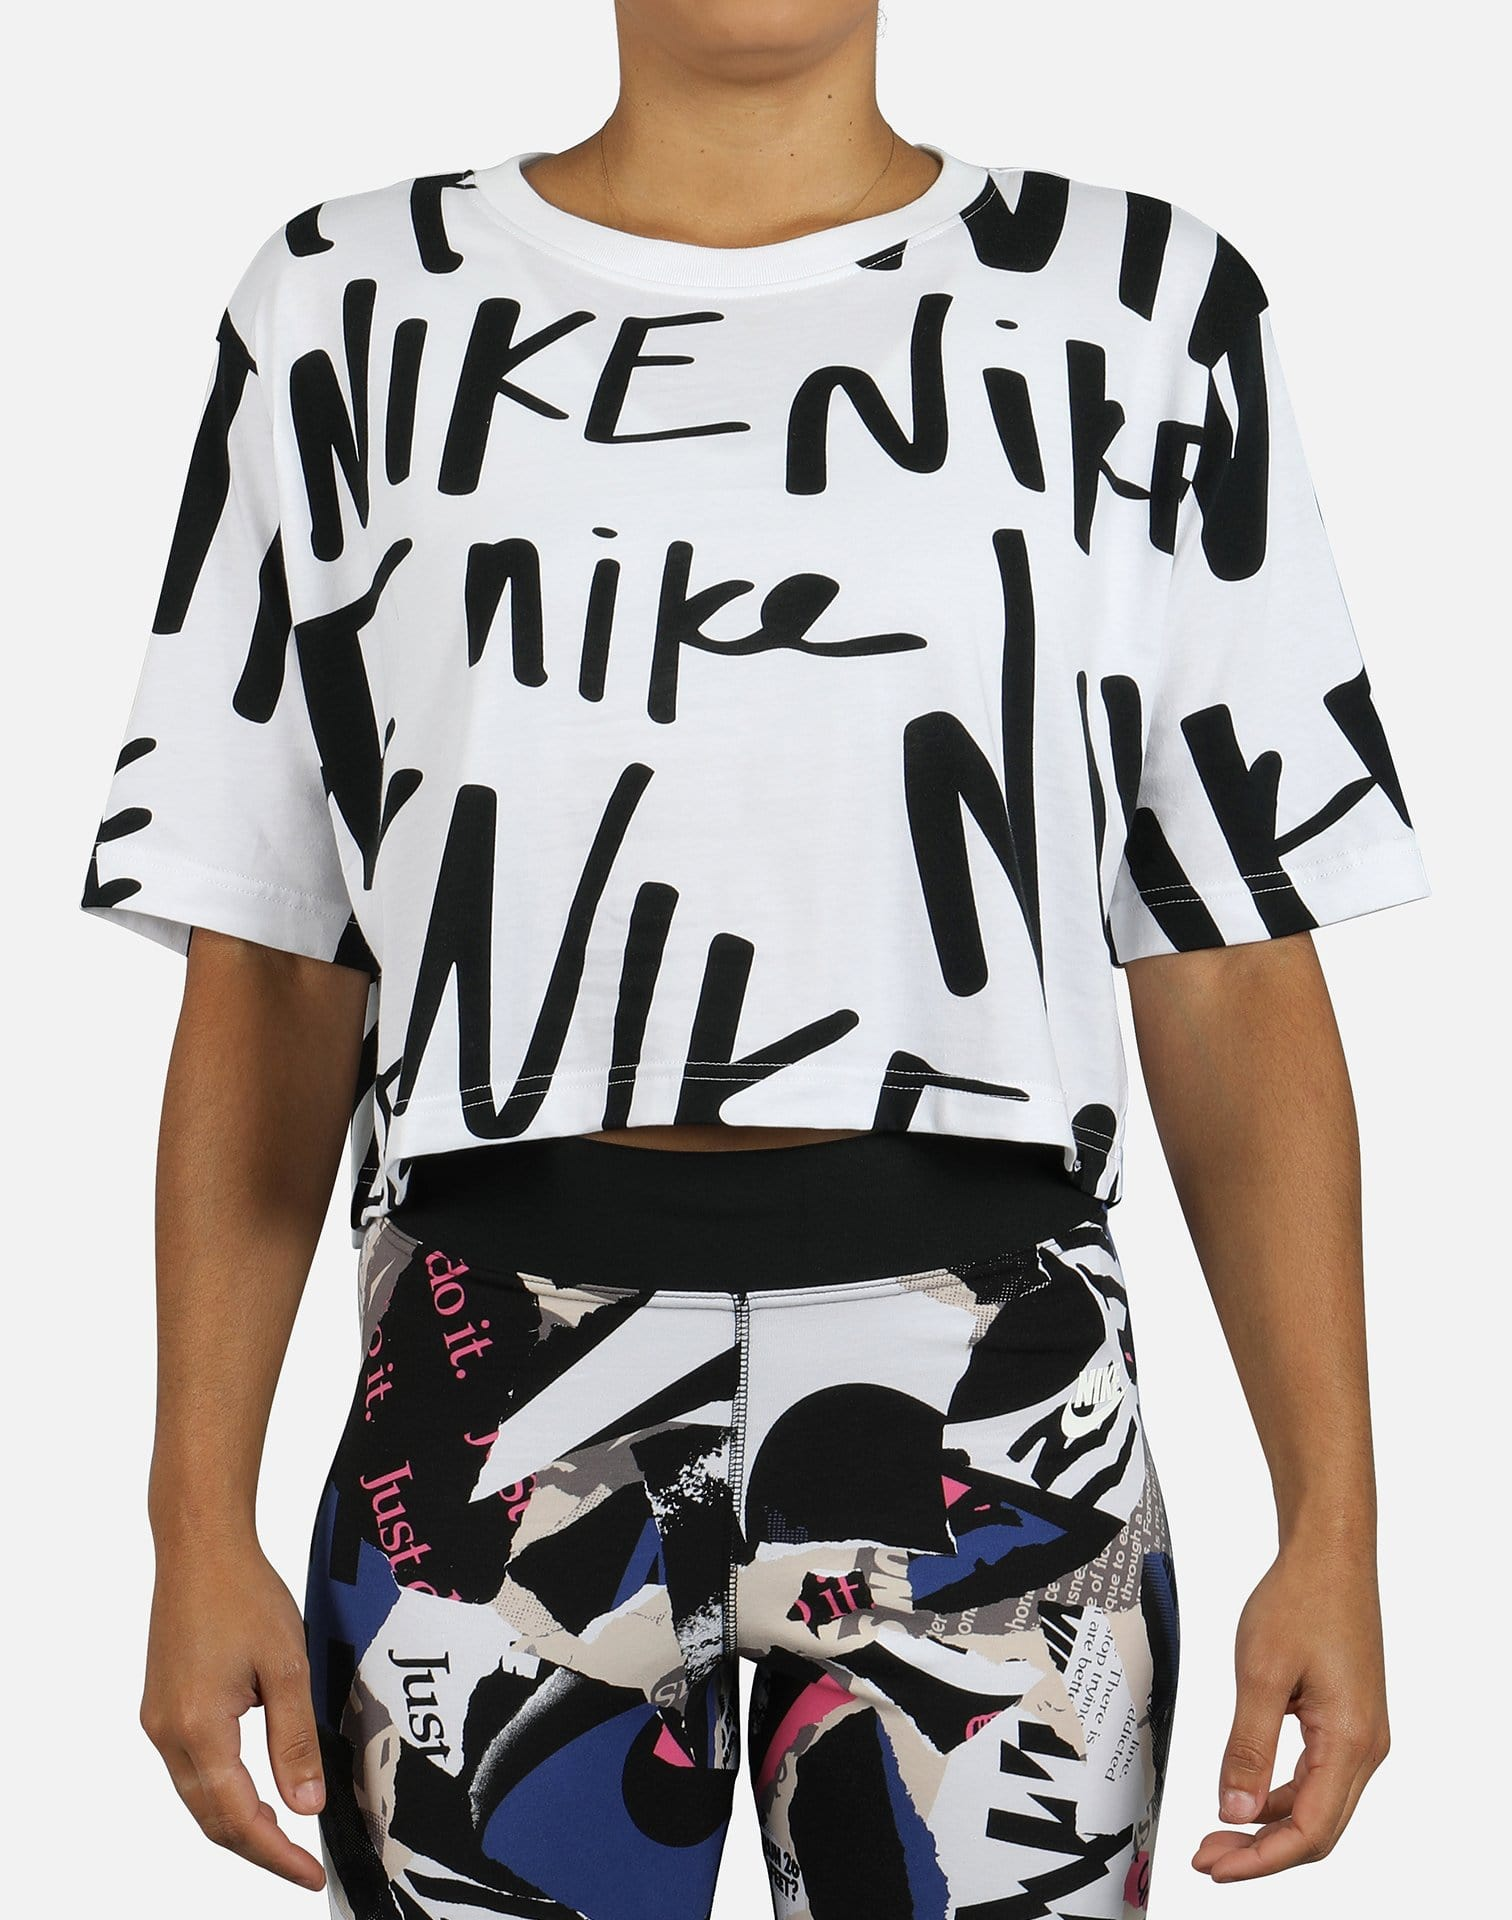 Nike Women's Logo Mash Crop Top